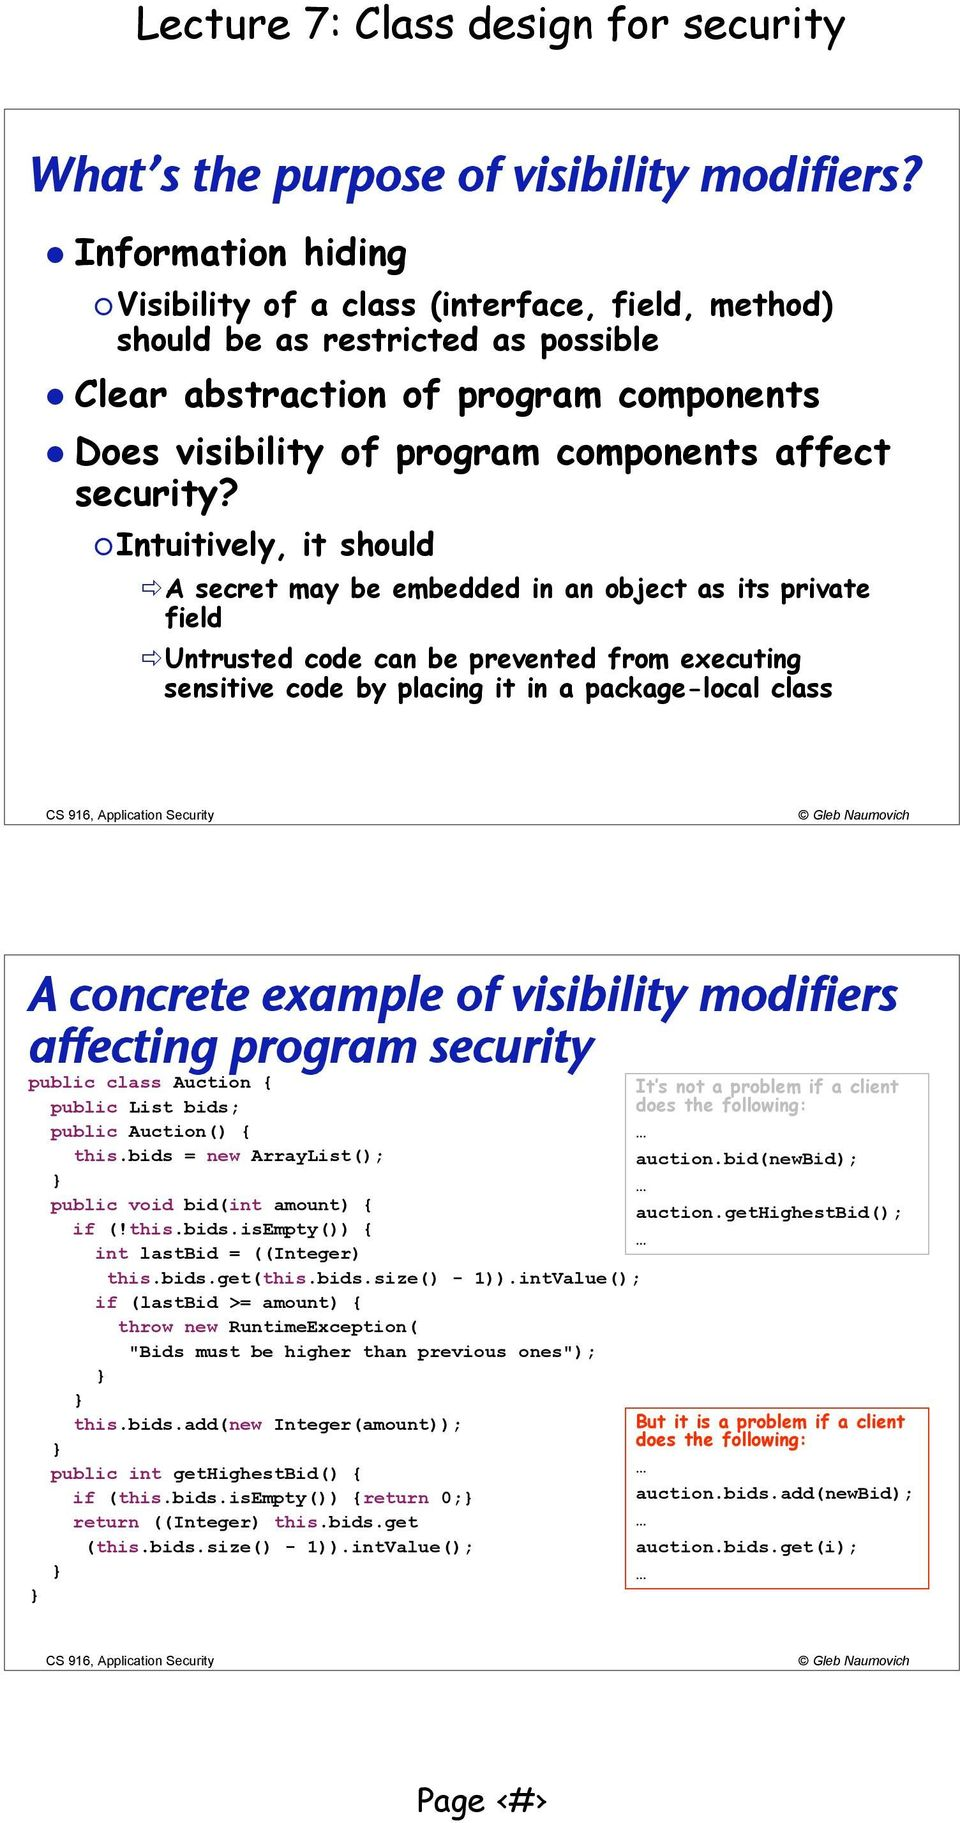 Intuitively, it should A secret may be embedded in an object as its private field Untrusted code can be prevented from executing sensitive code by placing it in a package-local class A concrete